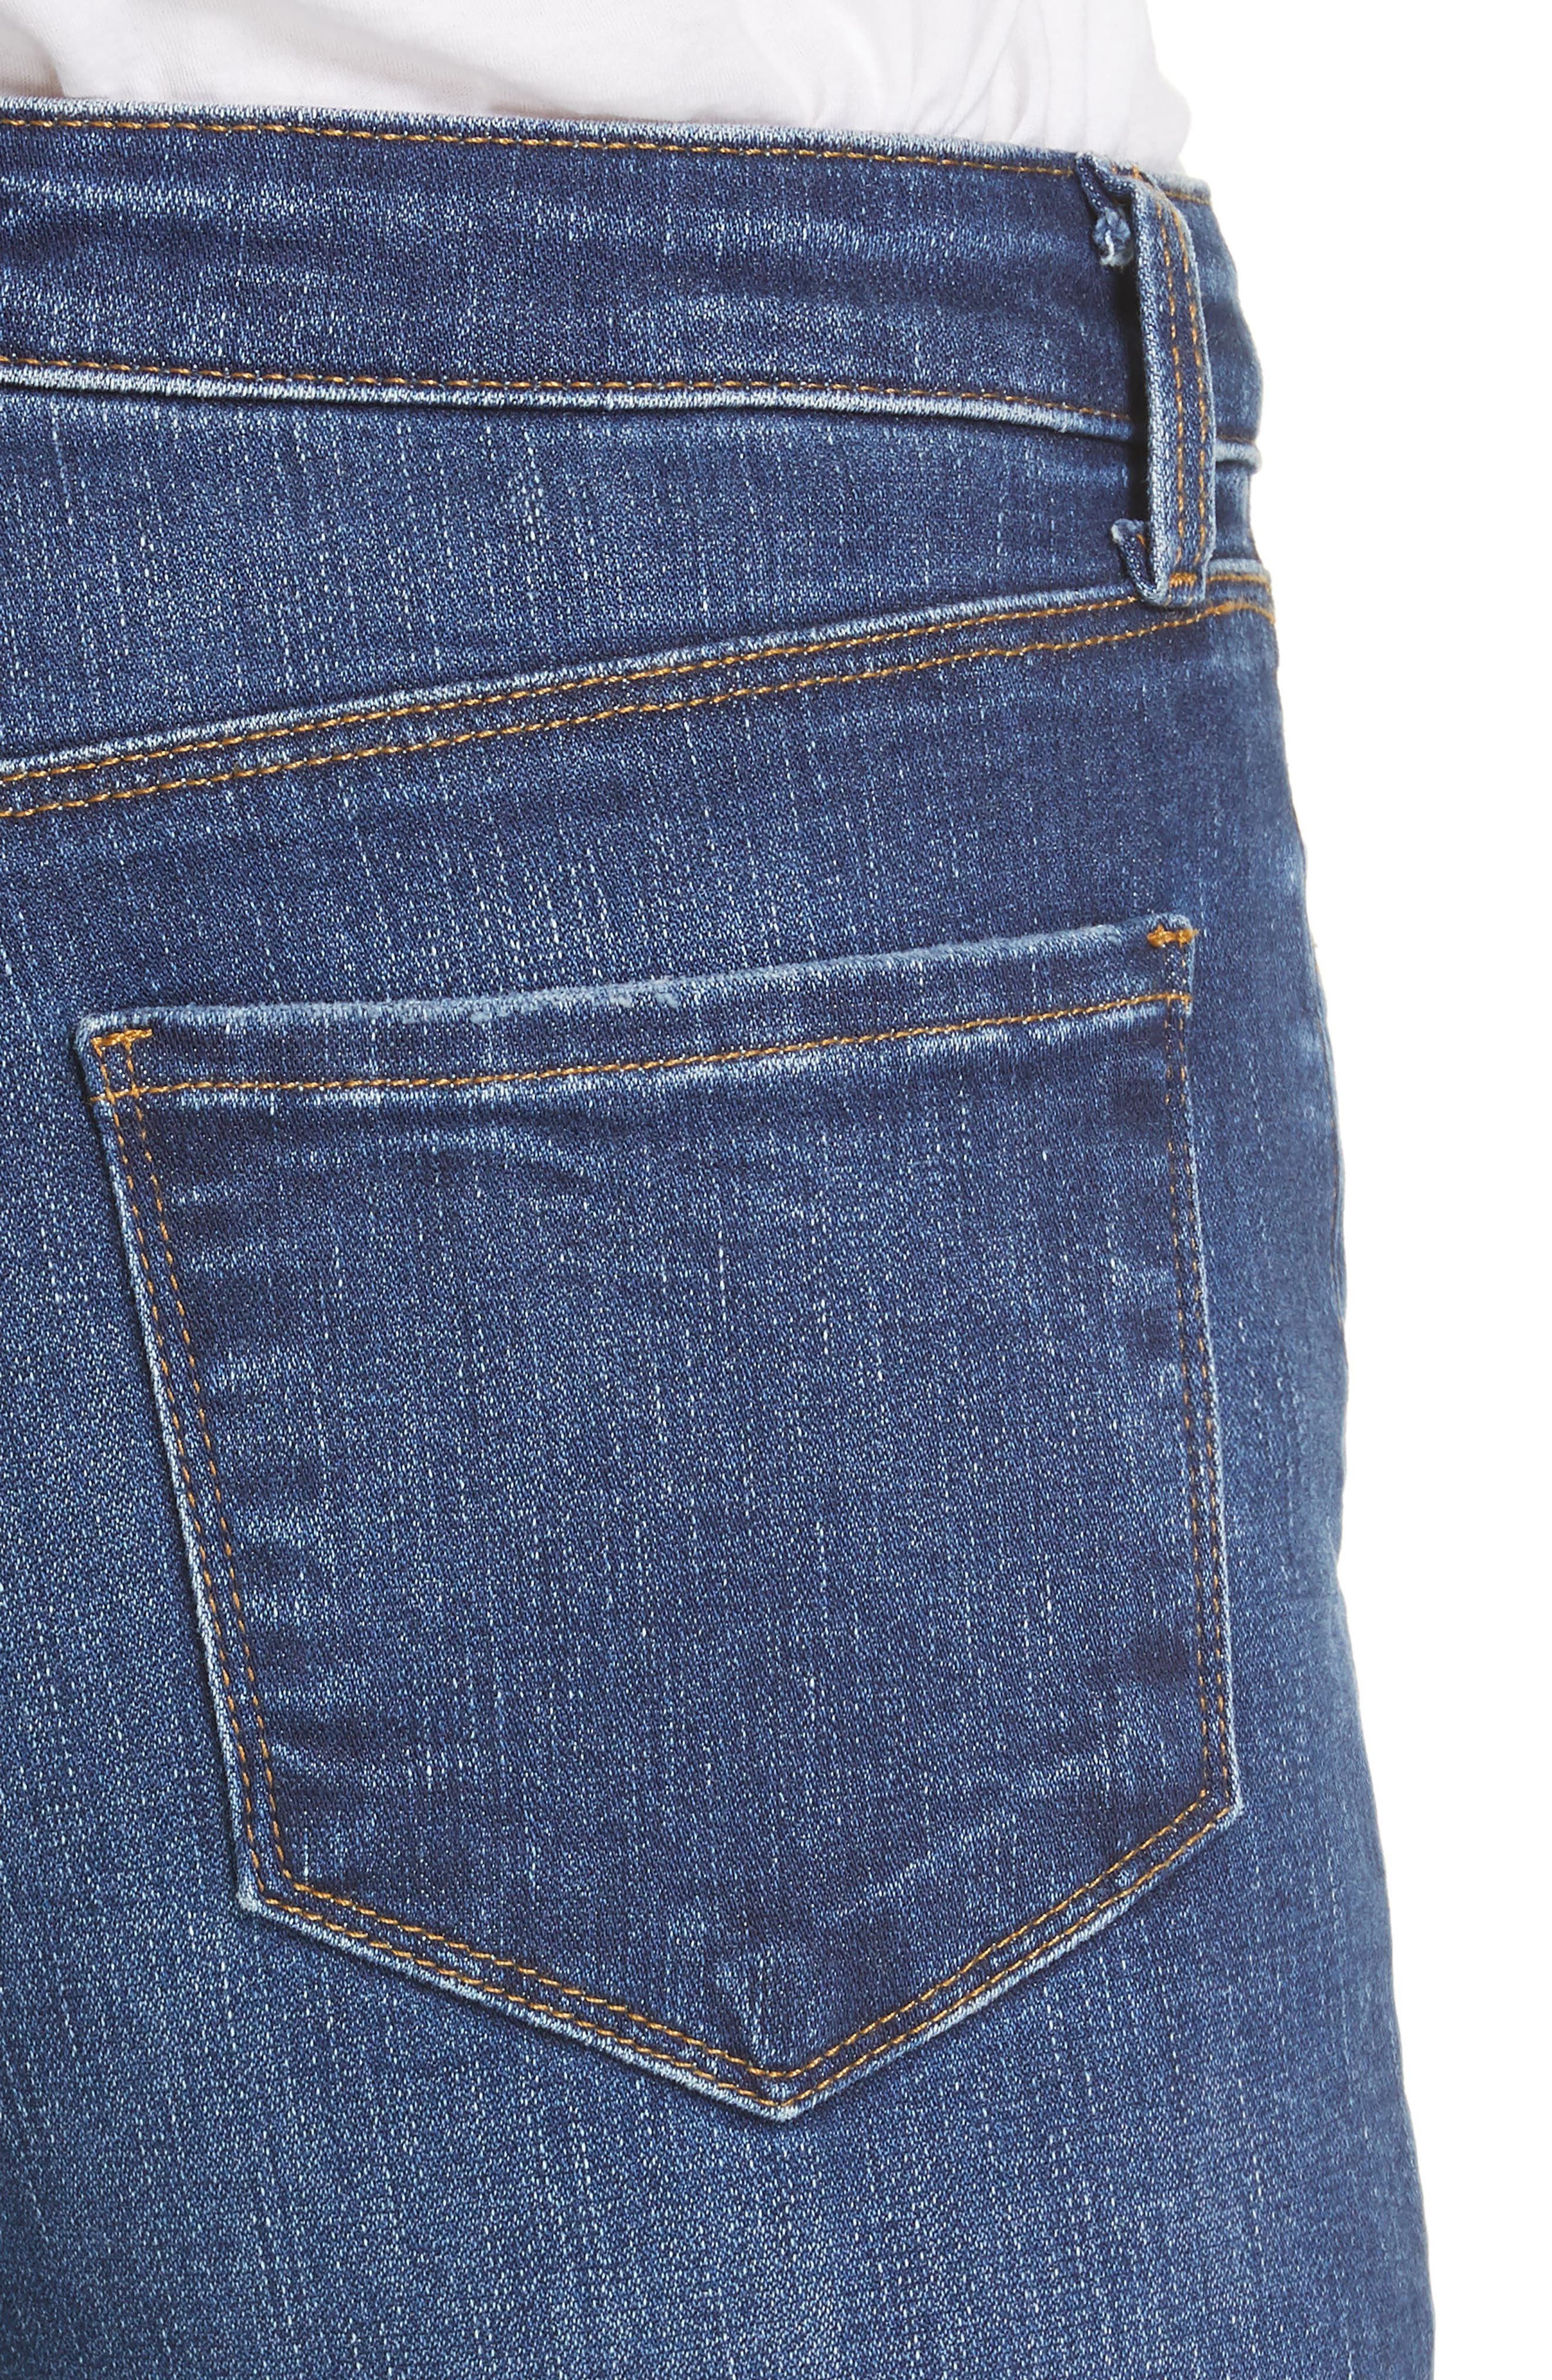 L'AGENCE, Margot Crop Skinny Jeans, Alternate thumbnail 5, color, TUSCAN